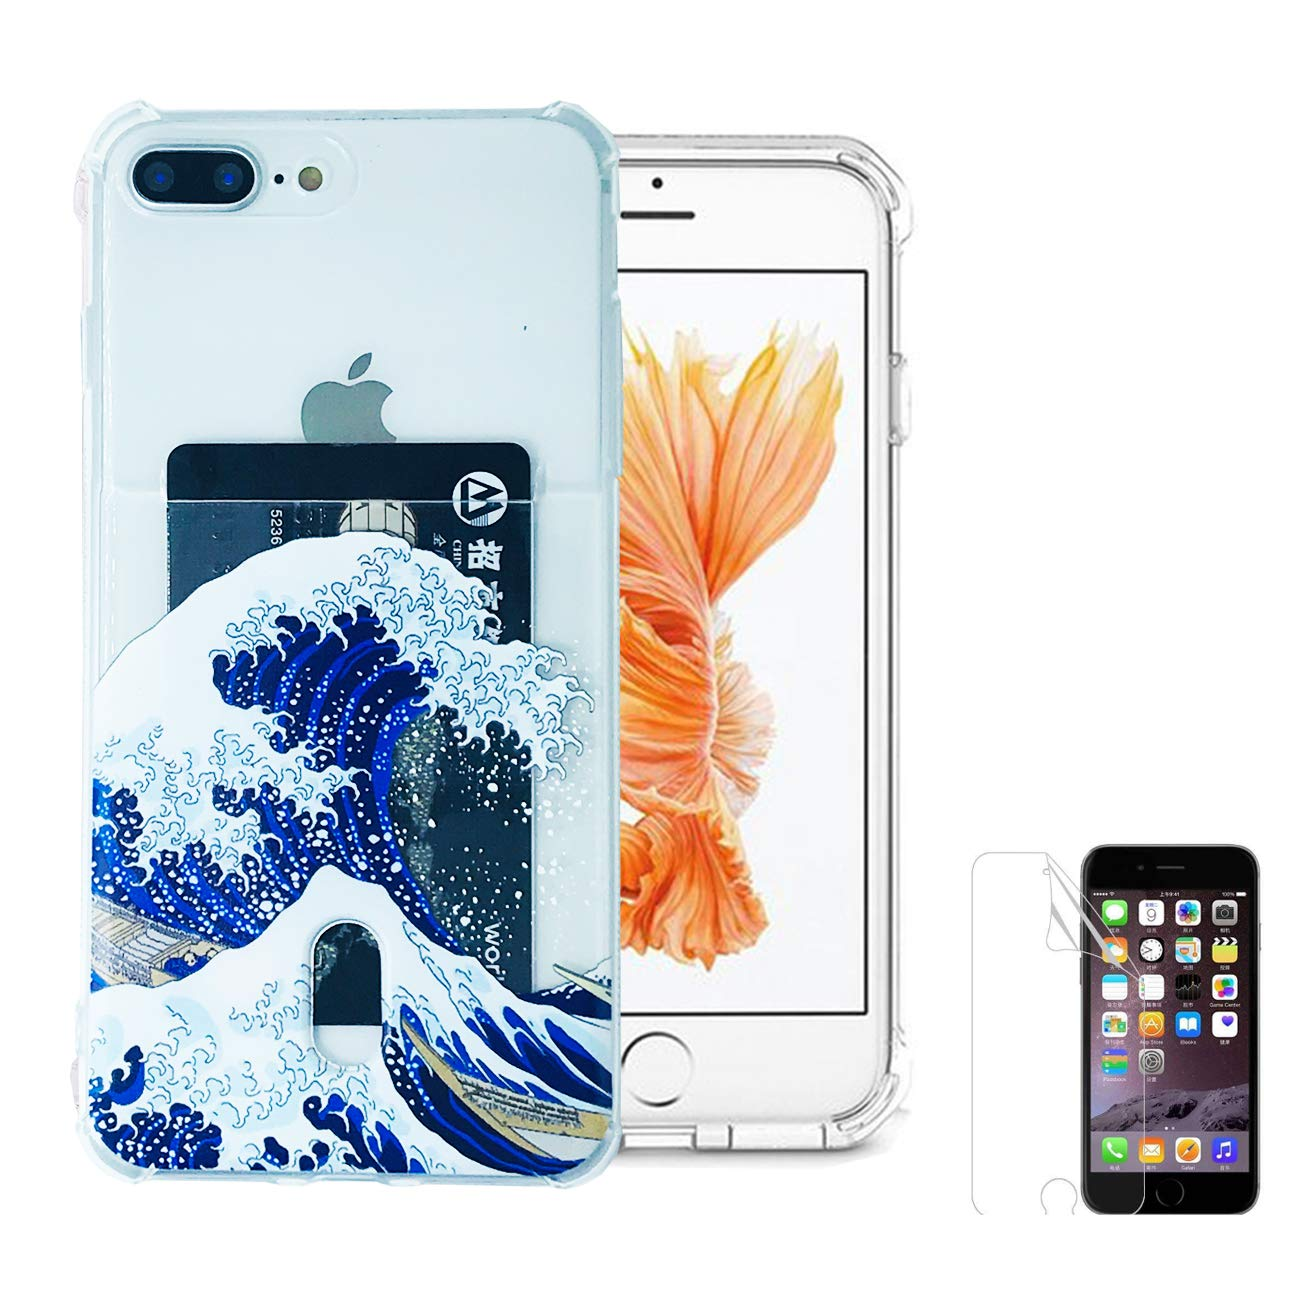 """Oddss Case Compatible for iPhone 8 Plus/7 Plus(5.5"""") with Card Holder Japanese Wave Blue Ultra-Slim Thin Soft TPU Clear Cover Compatible for iPhone 8 Plus/7 Plus with Screen Protector"""